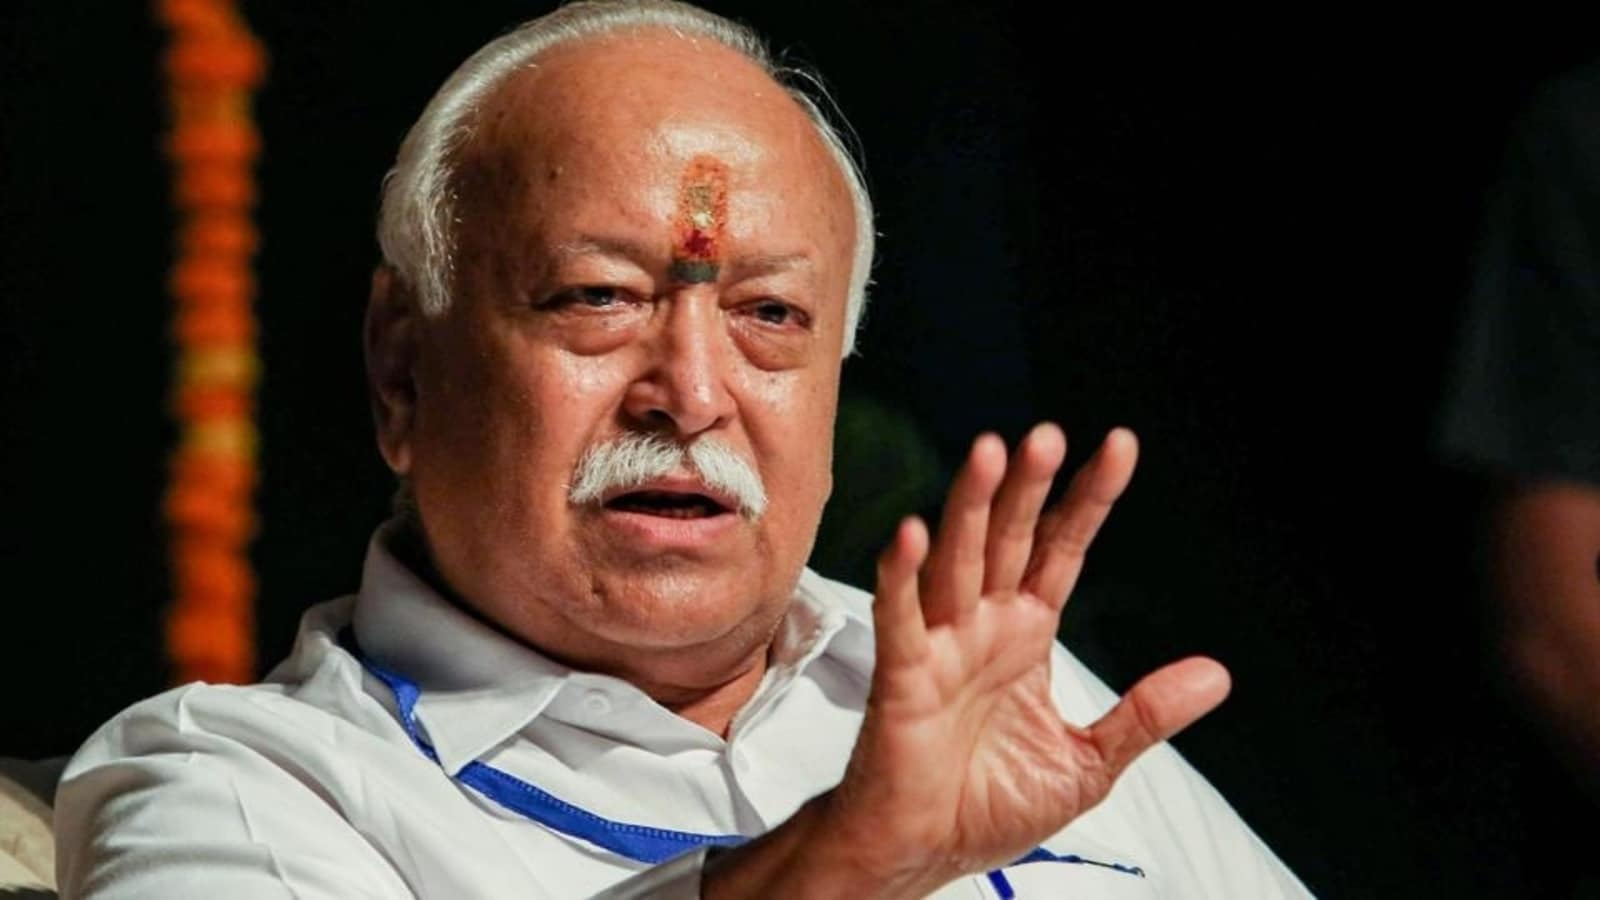 Muslims who migrated to Pak have no respect there: Mohan Bhagwat